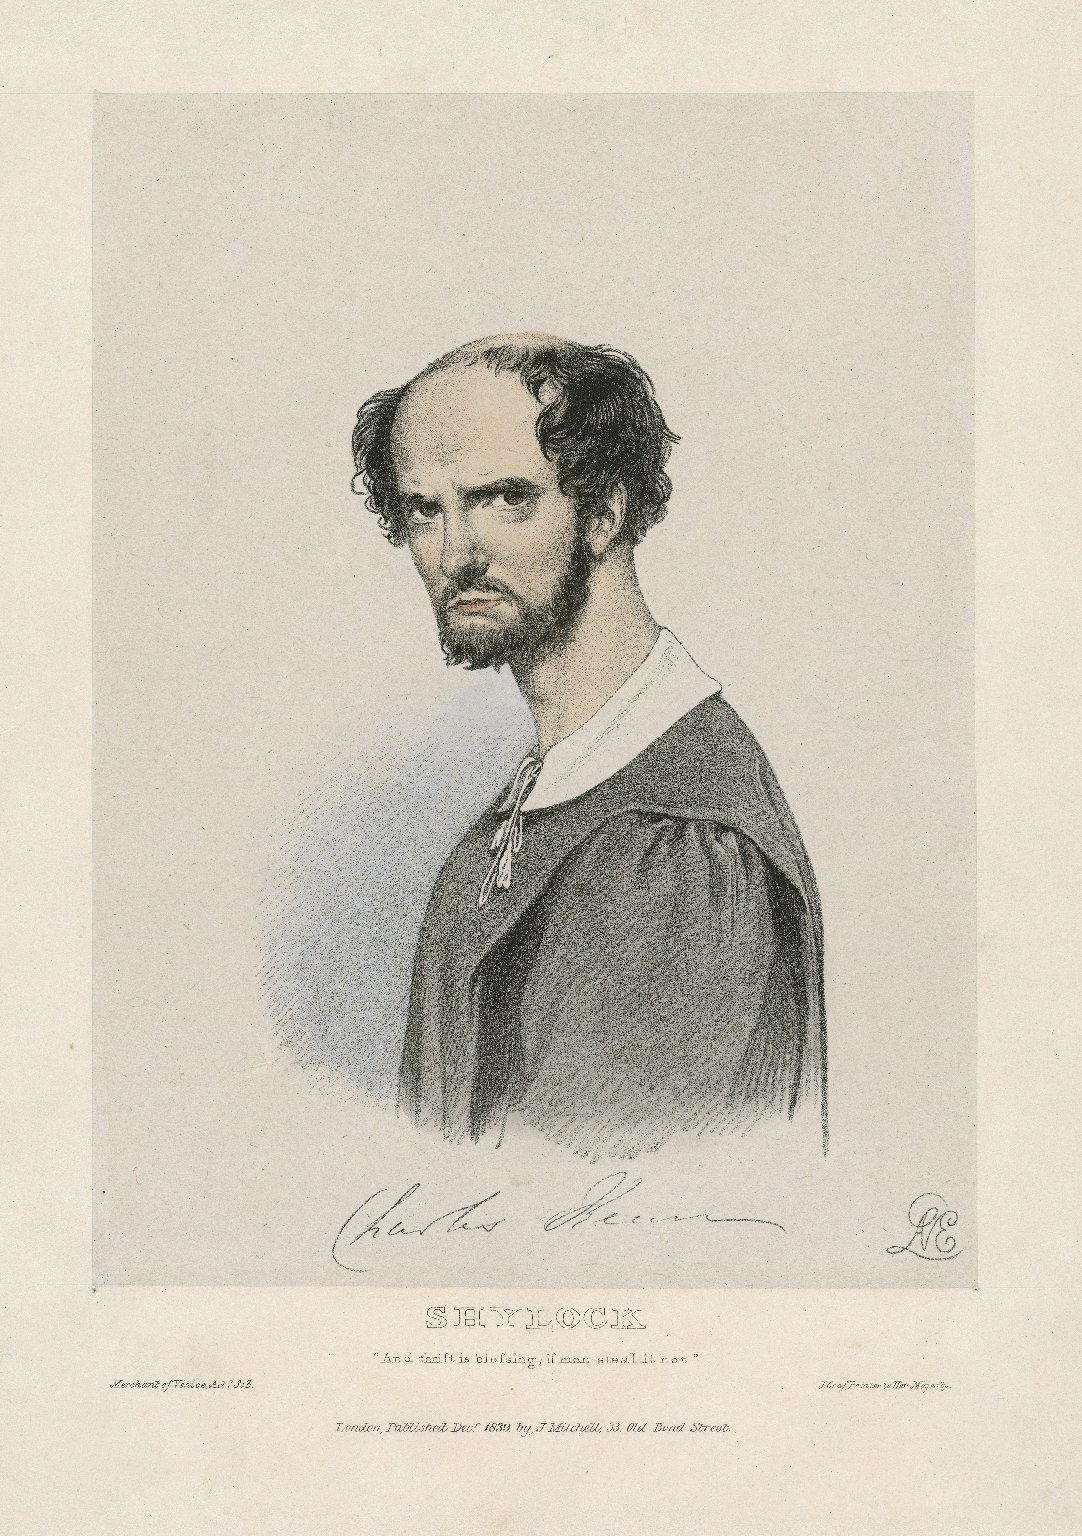 """Charles Kean [as] Shylock [in Shakespeare's] Merchant of Venice """"And thrift is blessing ..."""" act 1, sc. 3 [graphic] / Lane."""